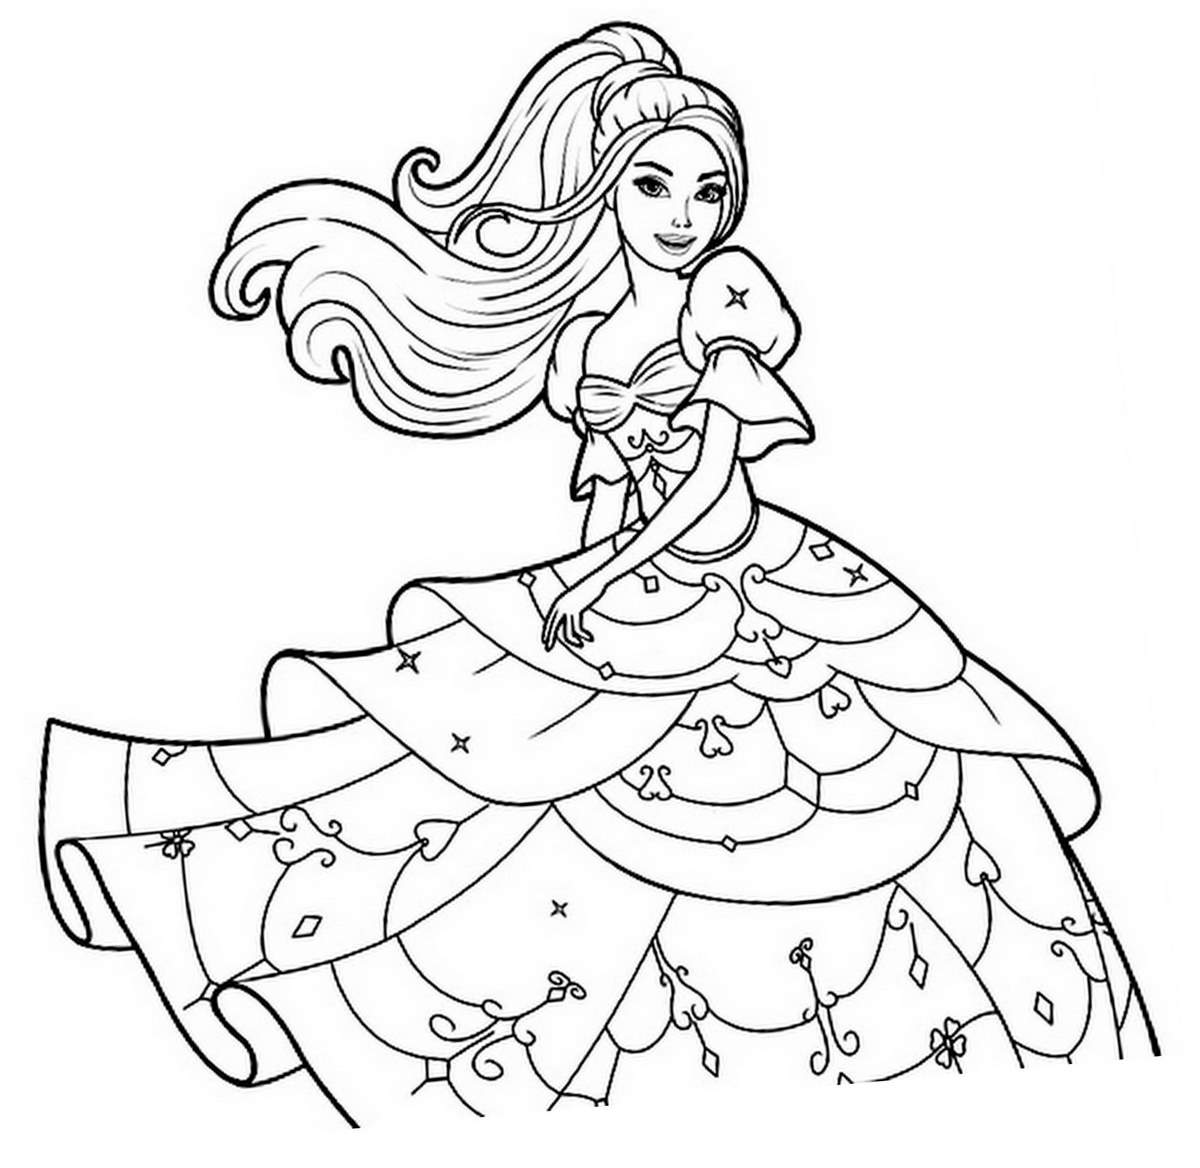 Coloriage dessiner barbie raiponce gratuit - Dessin anime barbie princesse ...